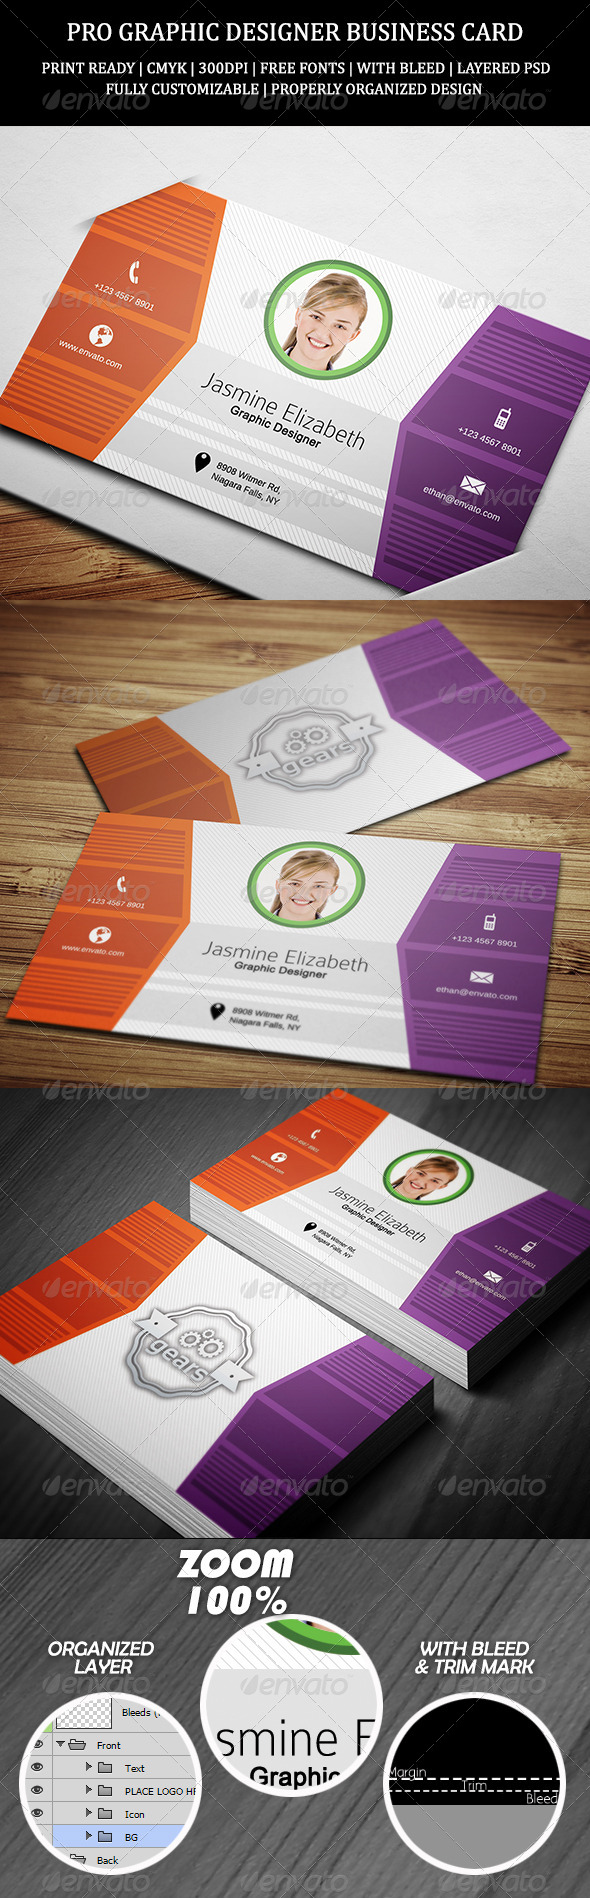 Pro Graphic Designer Business Card - Creative Business Cards